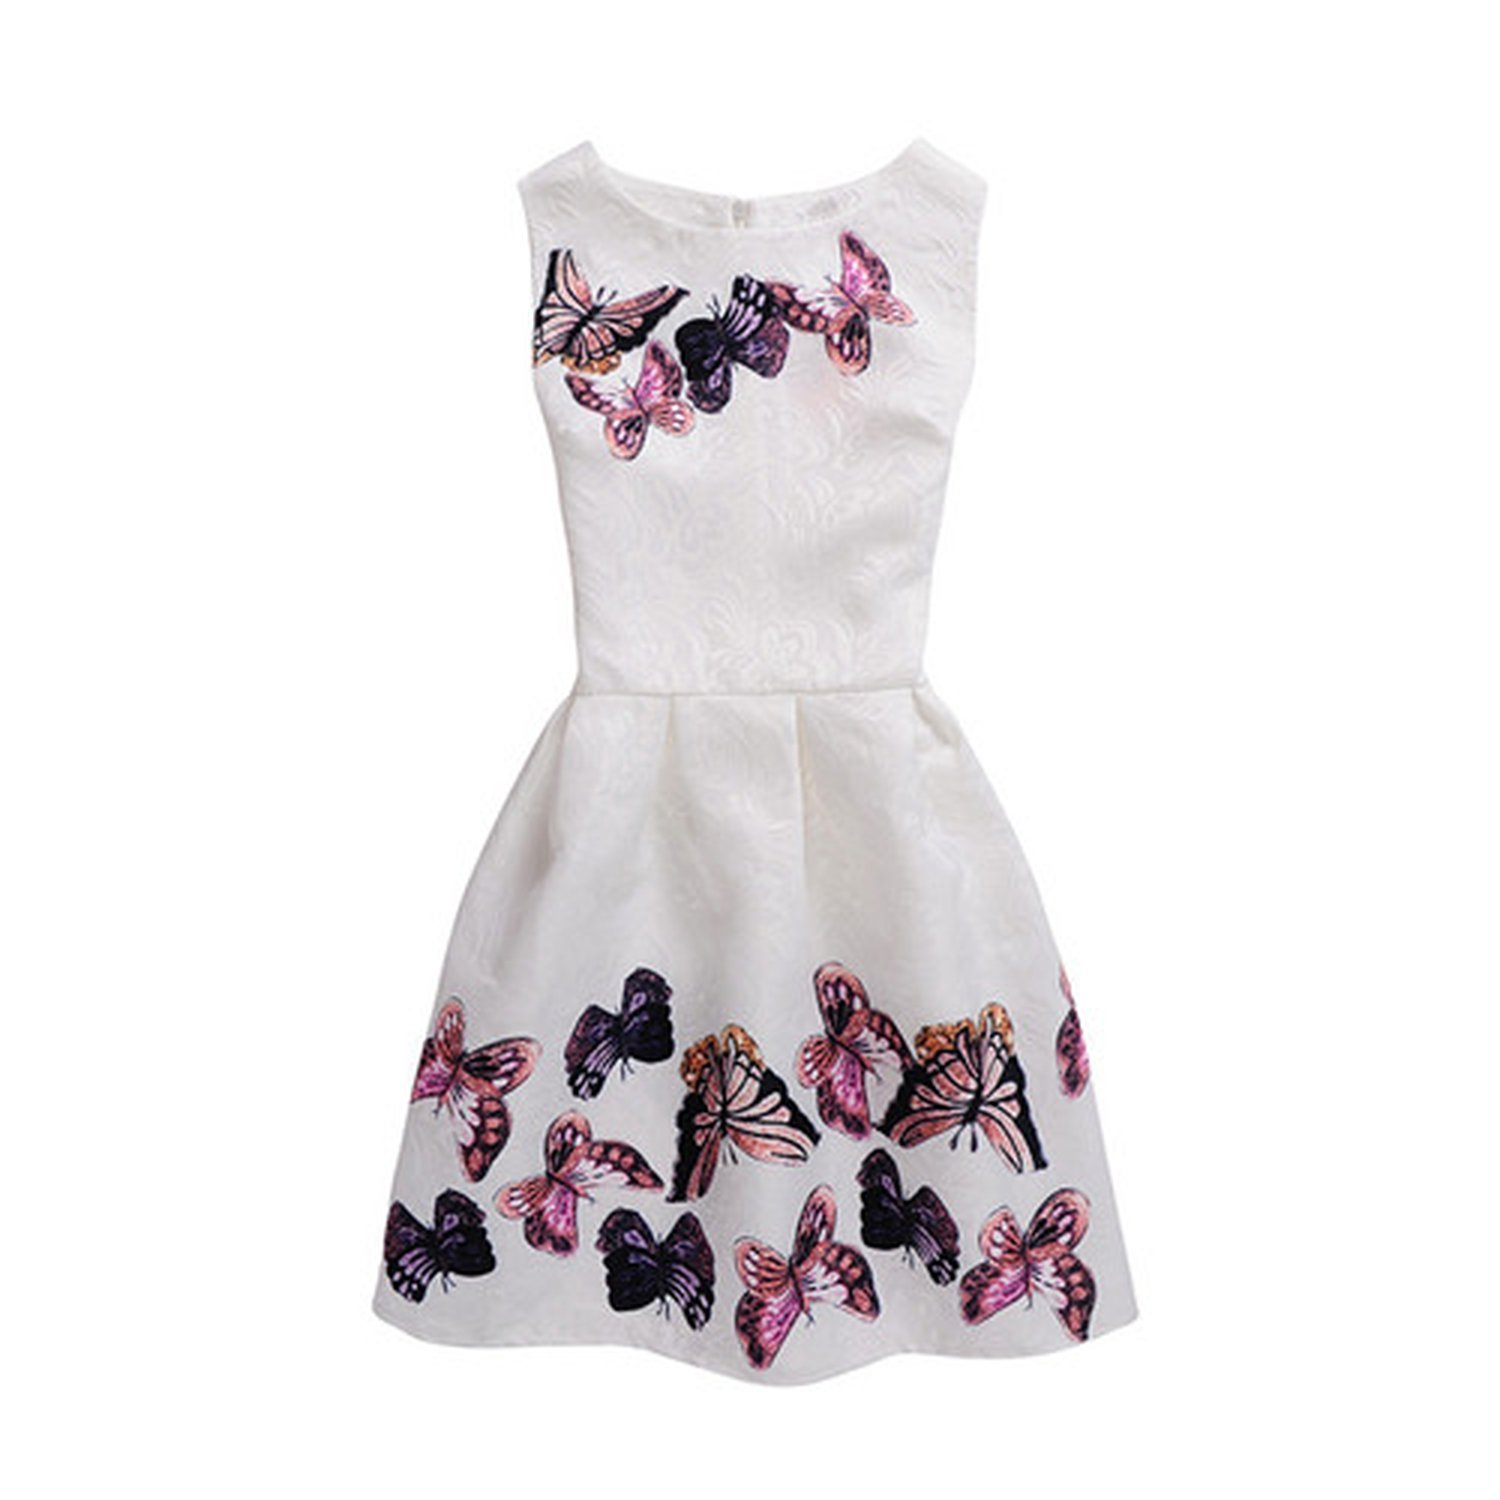 772ca693a9f0 Amazon.com  Frozac Summer Kids Dresses for Girl Butterfly Floral Printed  Sleeveless Casual Girl Dresses Age 6 8 9 10 11 12 16 Year Party Dress